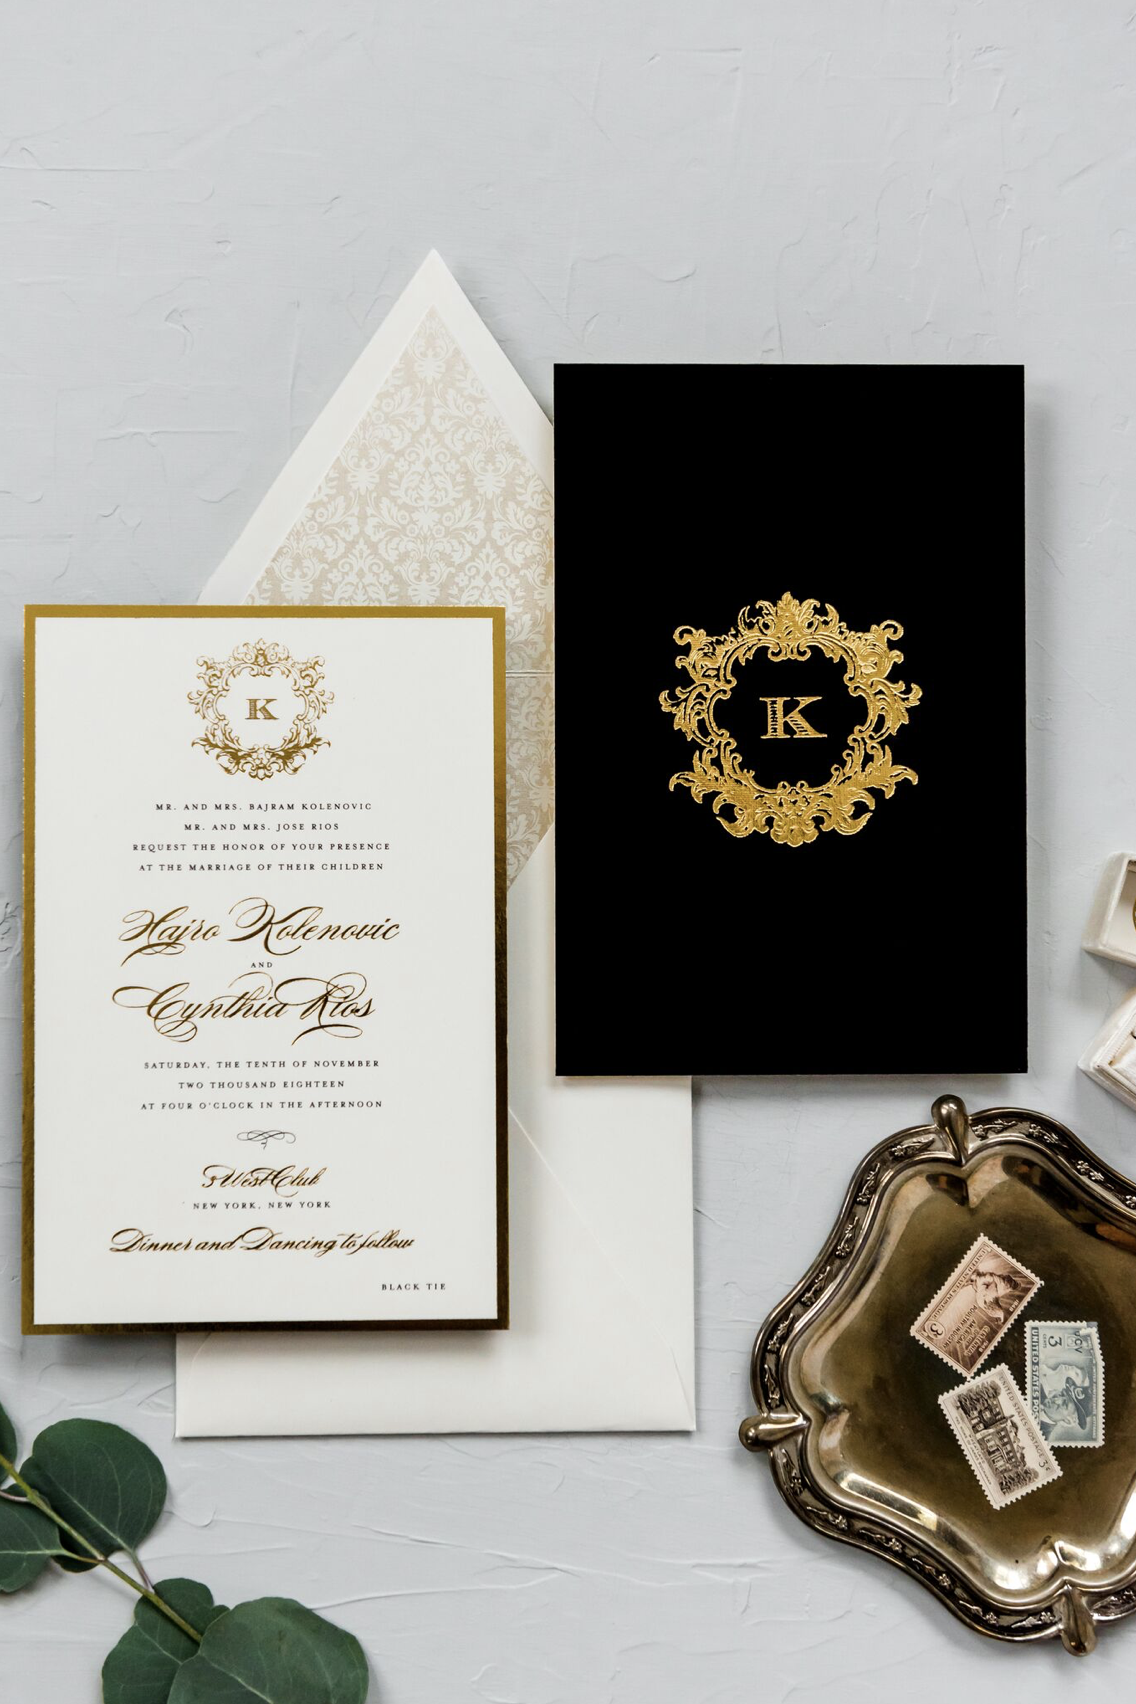 Wedding Invitations Little Black Dress Paperie Velvet Wedding Invitations Foil Wedding Invitations Gold Foil Wedding Invitations